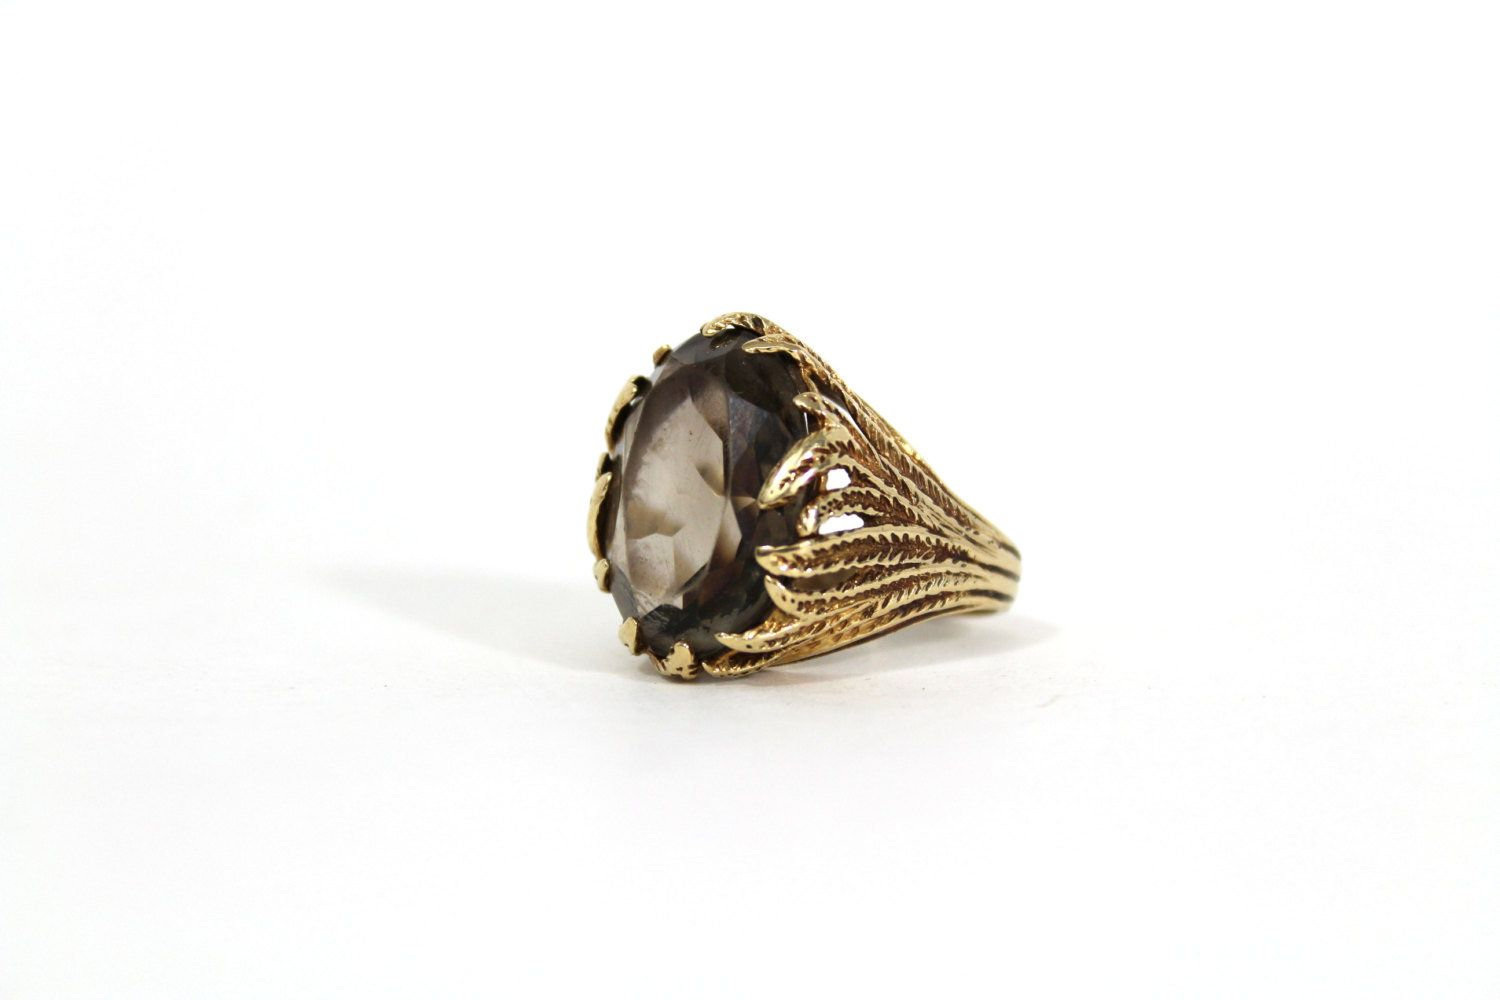 Vintage Feather Ring Smoky Quartz And 10 Karat Gold Size 6 5 In 2020 Boho Rings Feather Ring Smoky Quartz